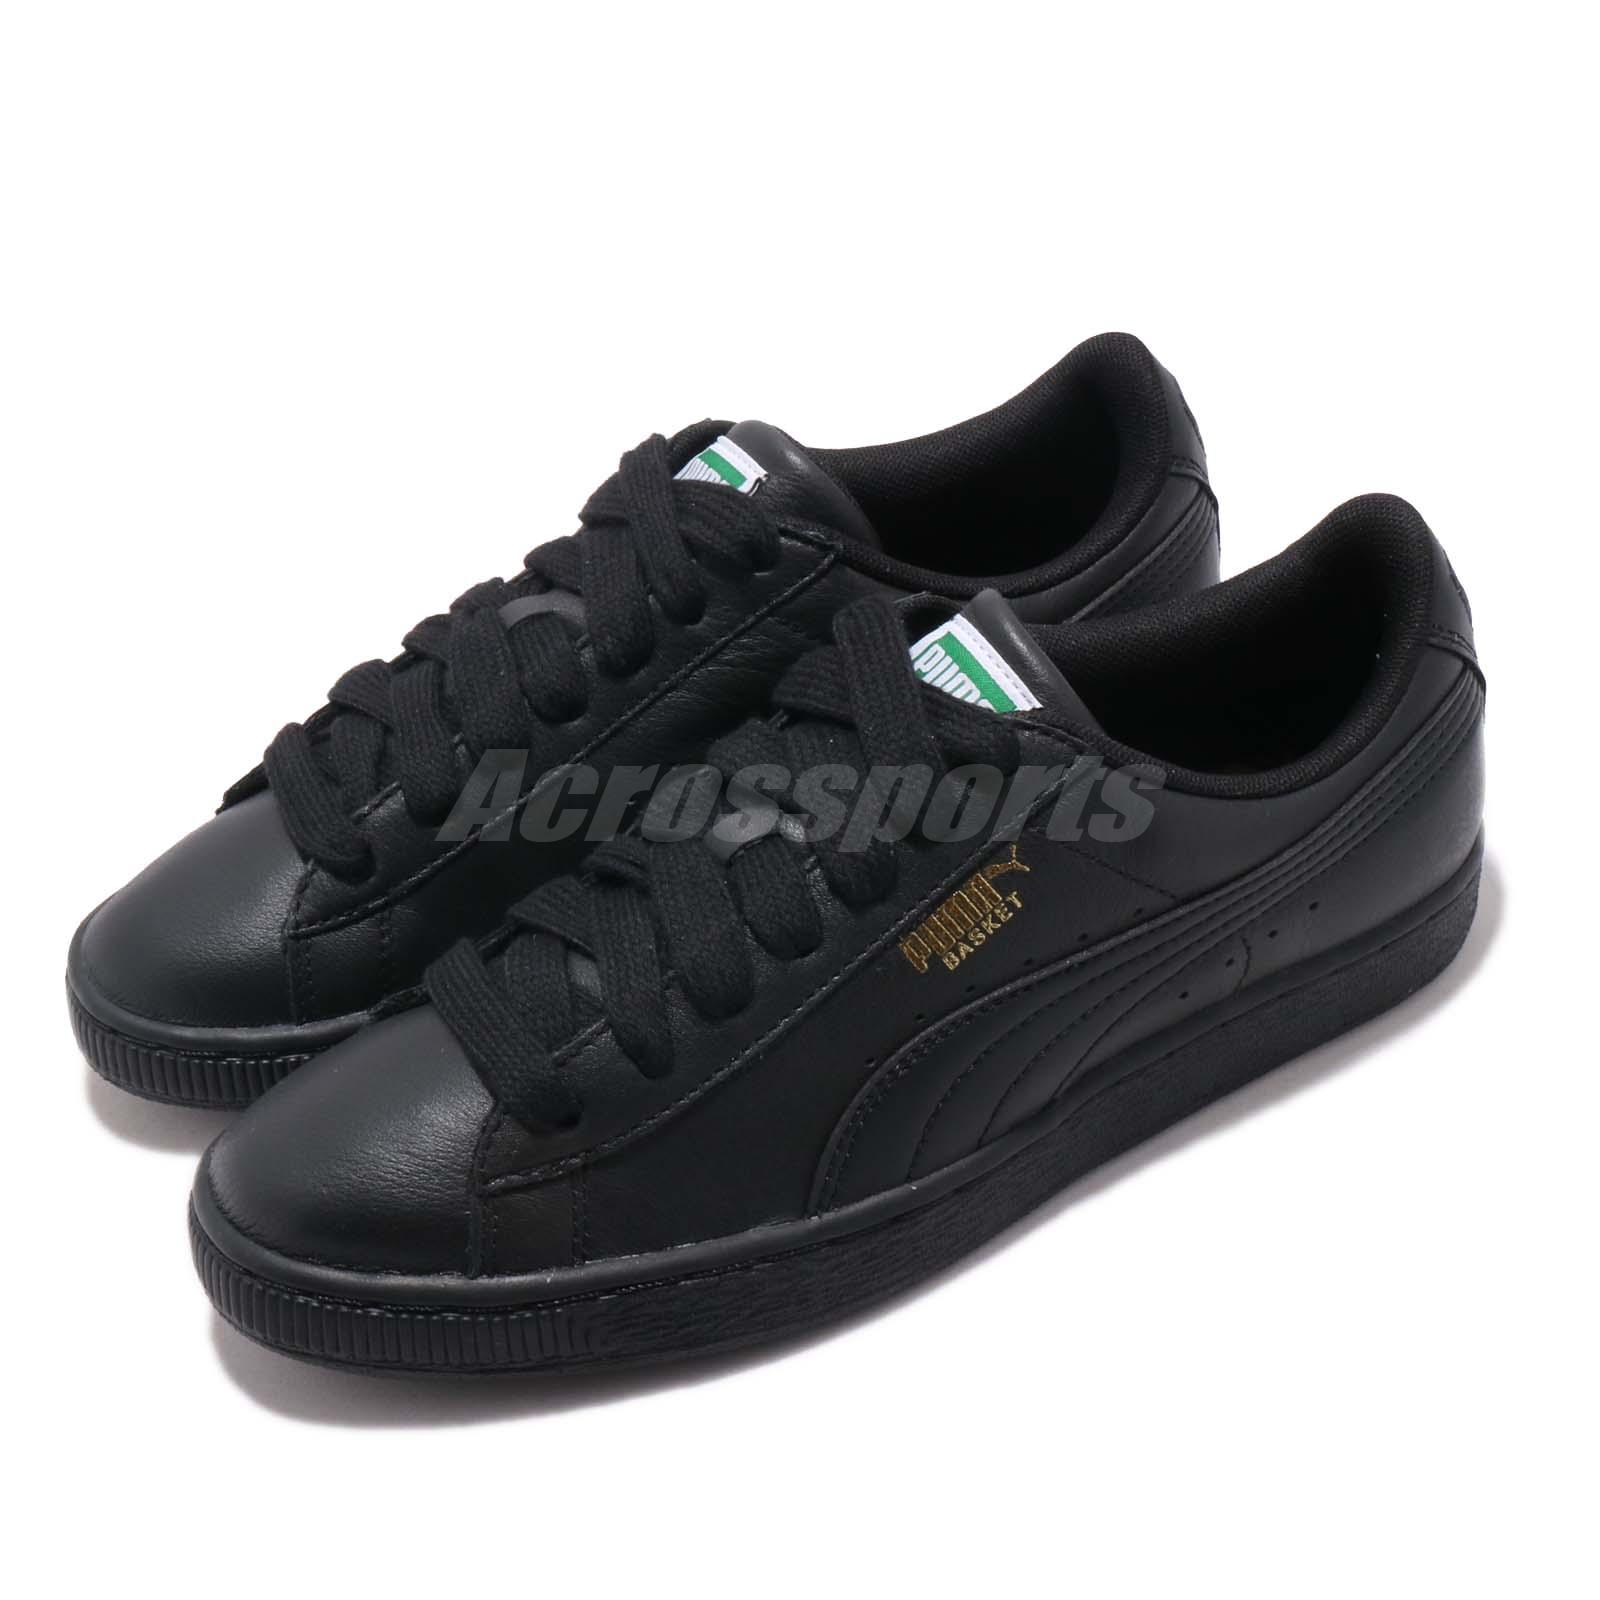 37f55ec2798a Details about Puma Basket Classic LFS Black Gold Men Women Casual Shoes  Sneakers 354367-19